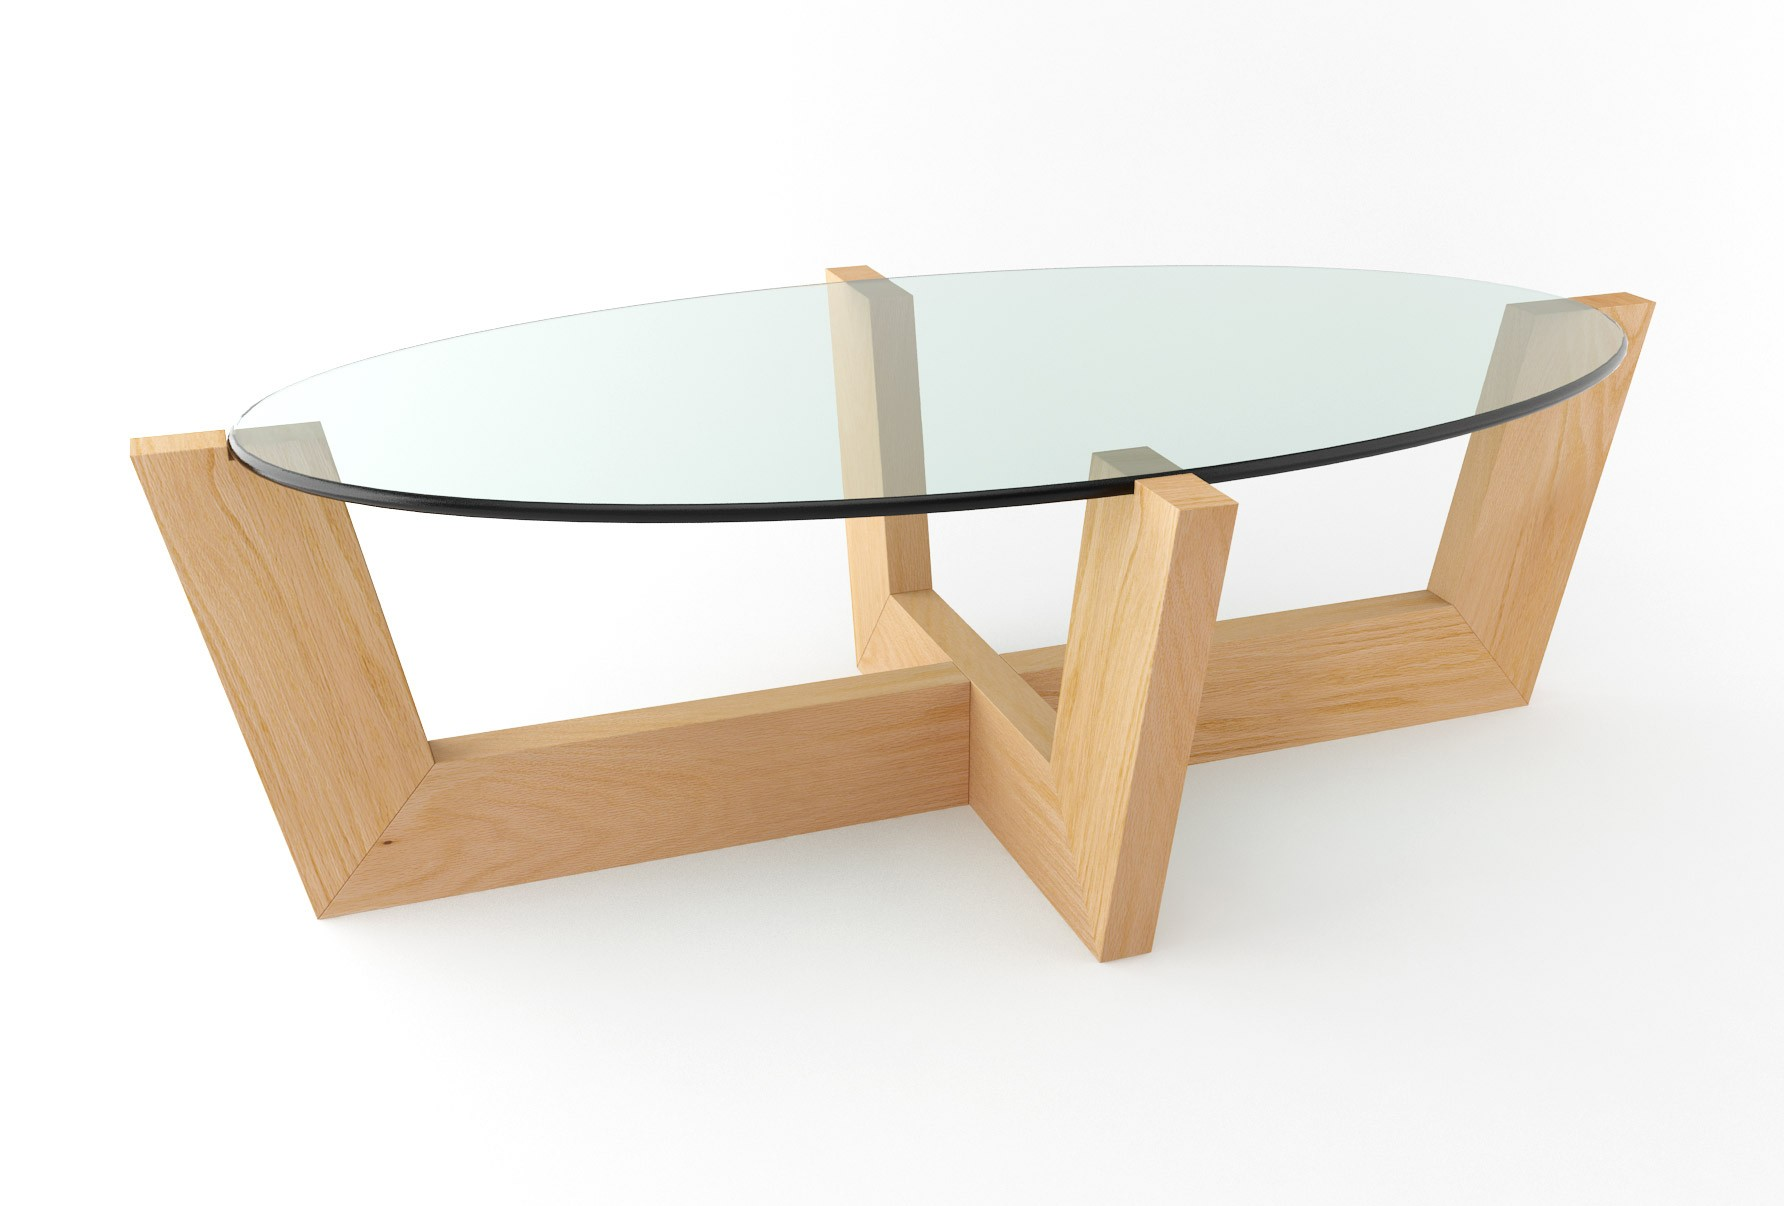 beveled-glass-coffee-table-the-cubes-will-provide-